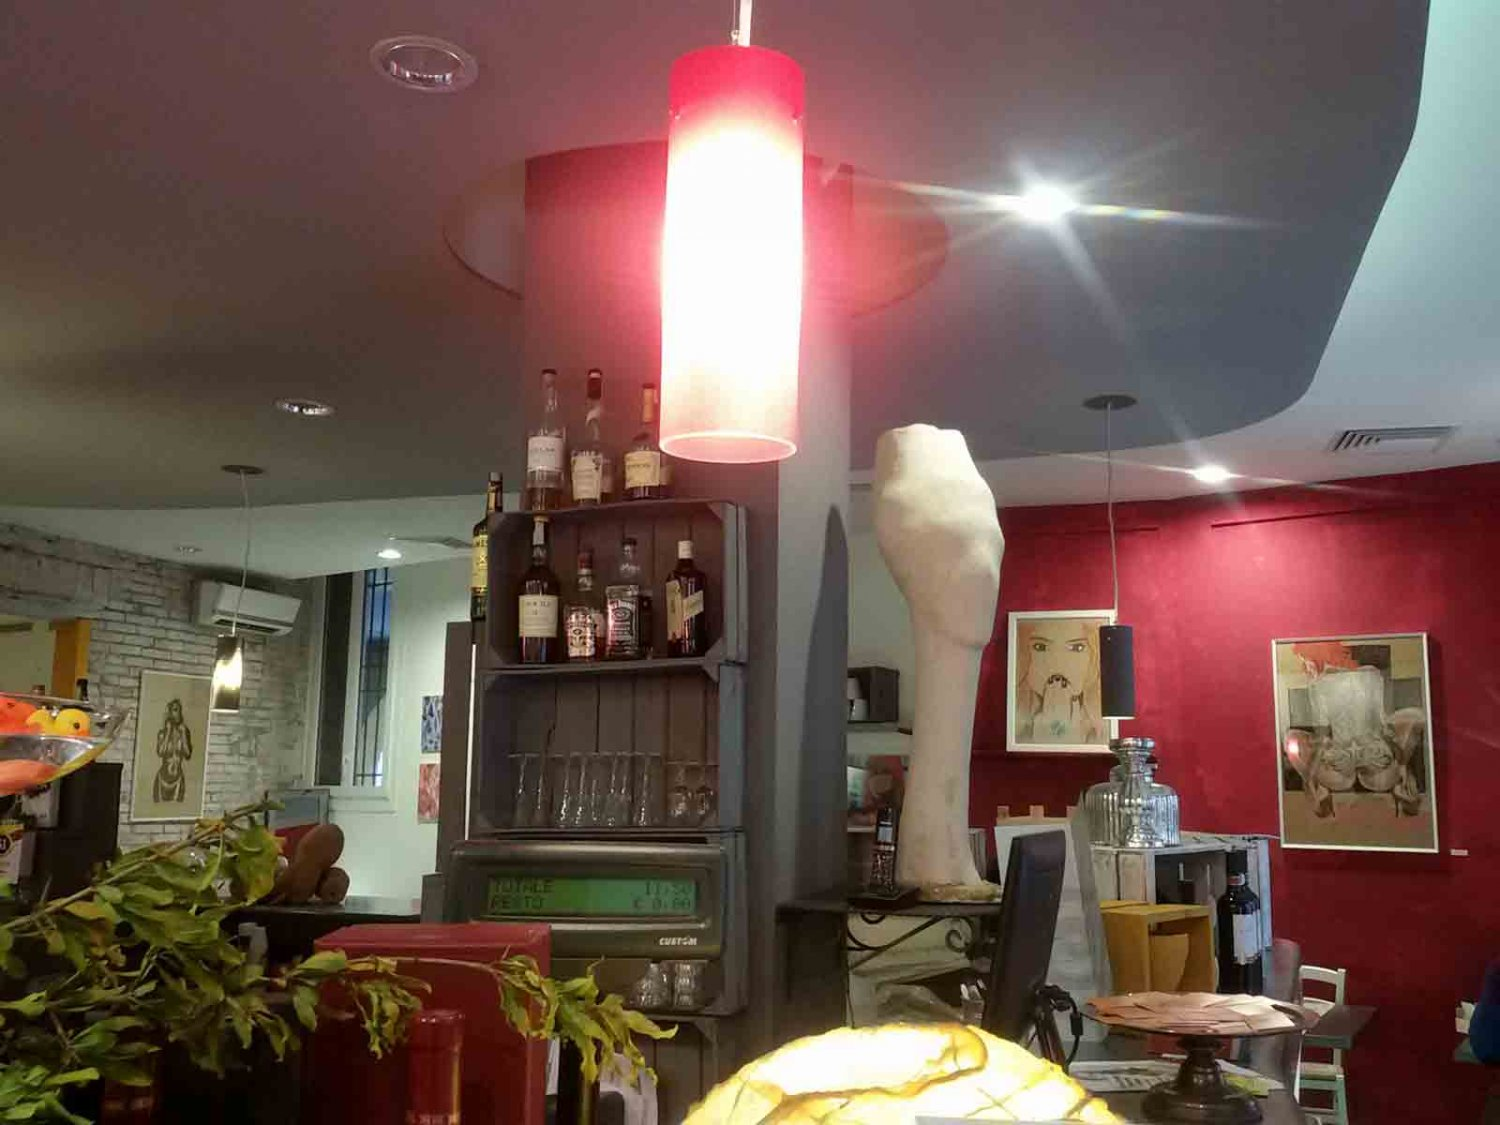 Golem Cucina e Dintorni - Traditional dishes and Gourmet ...